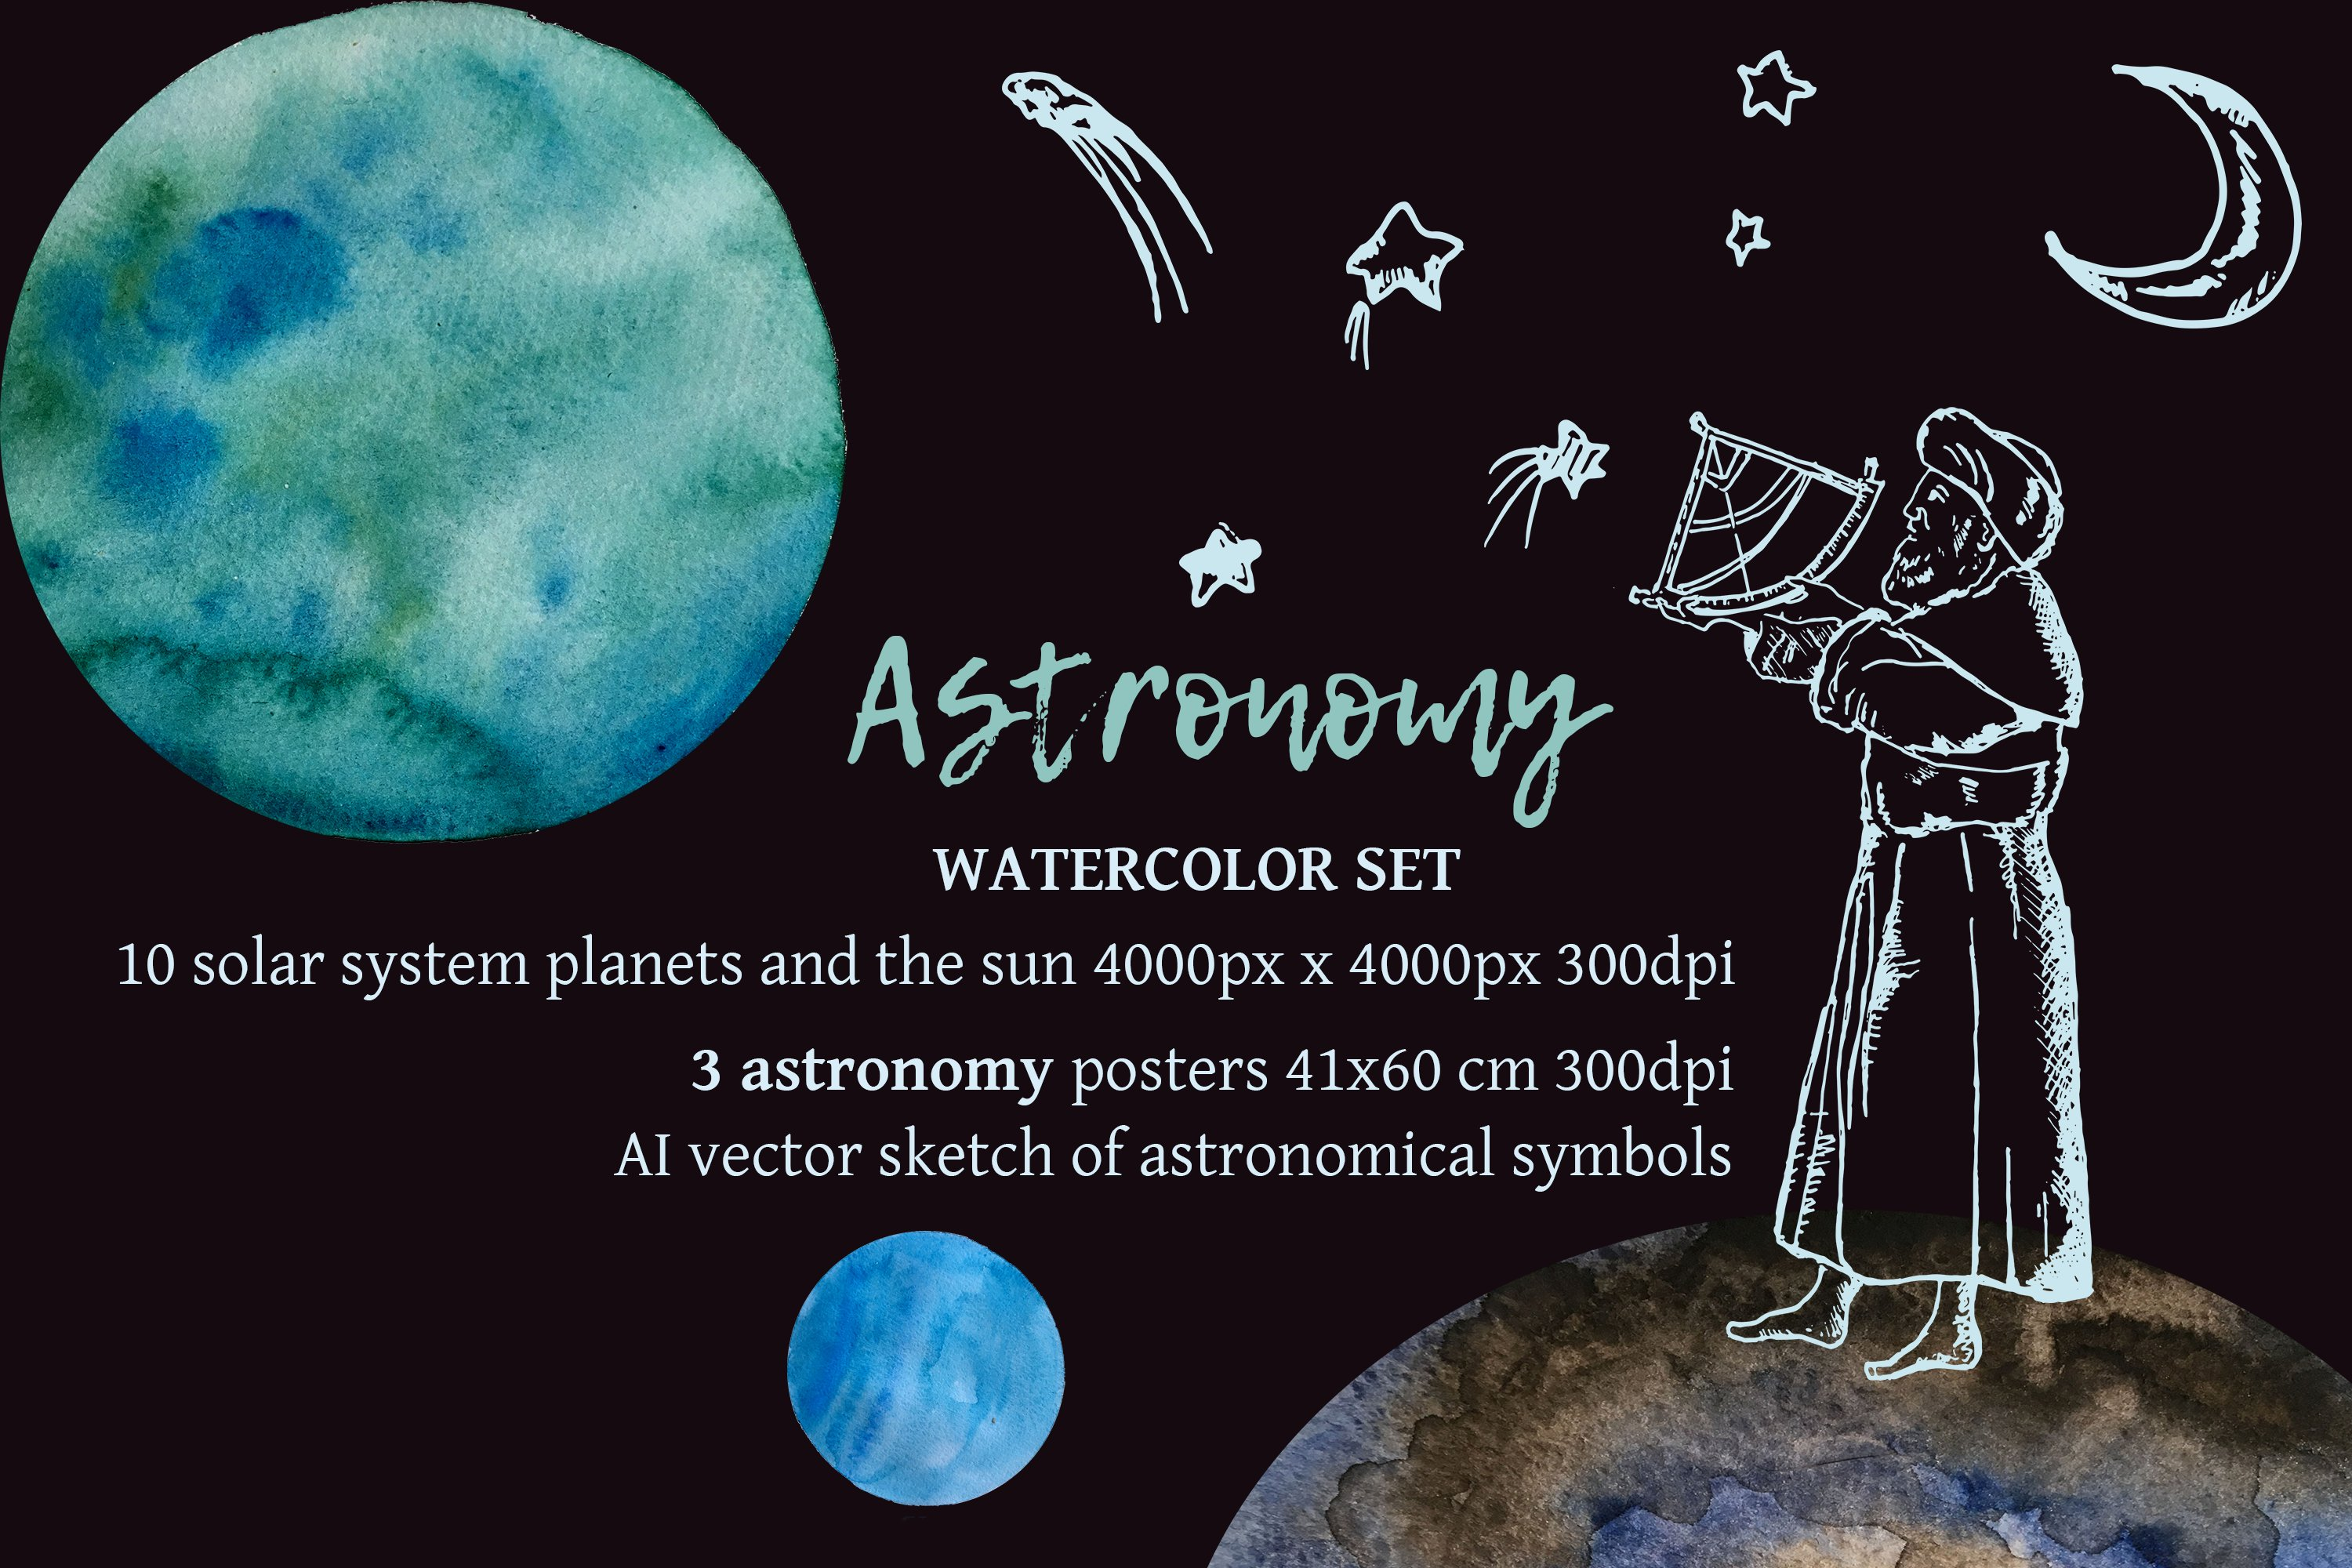 Astronomy watercolor set example image 1